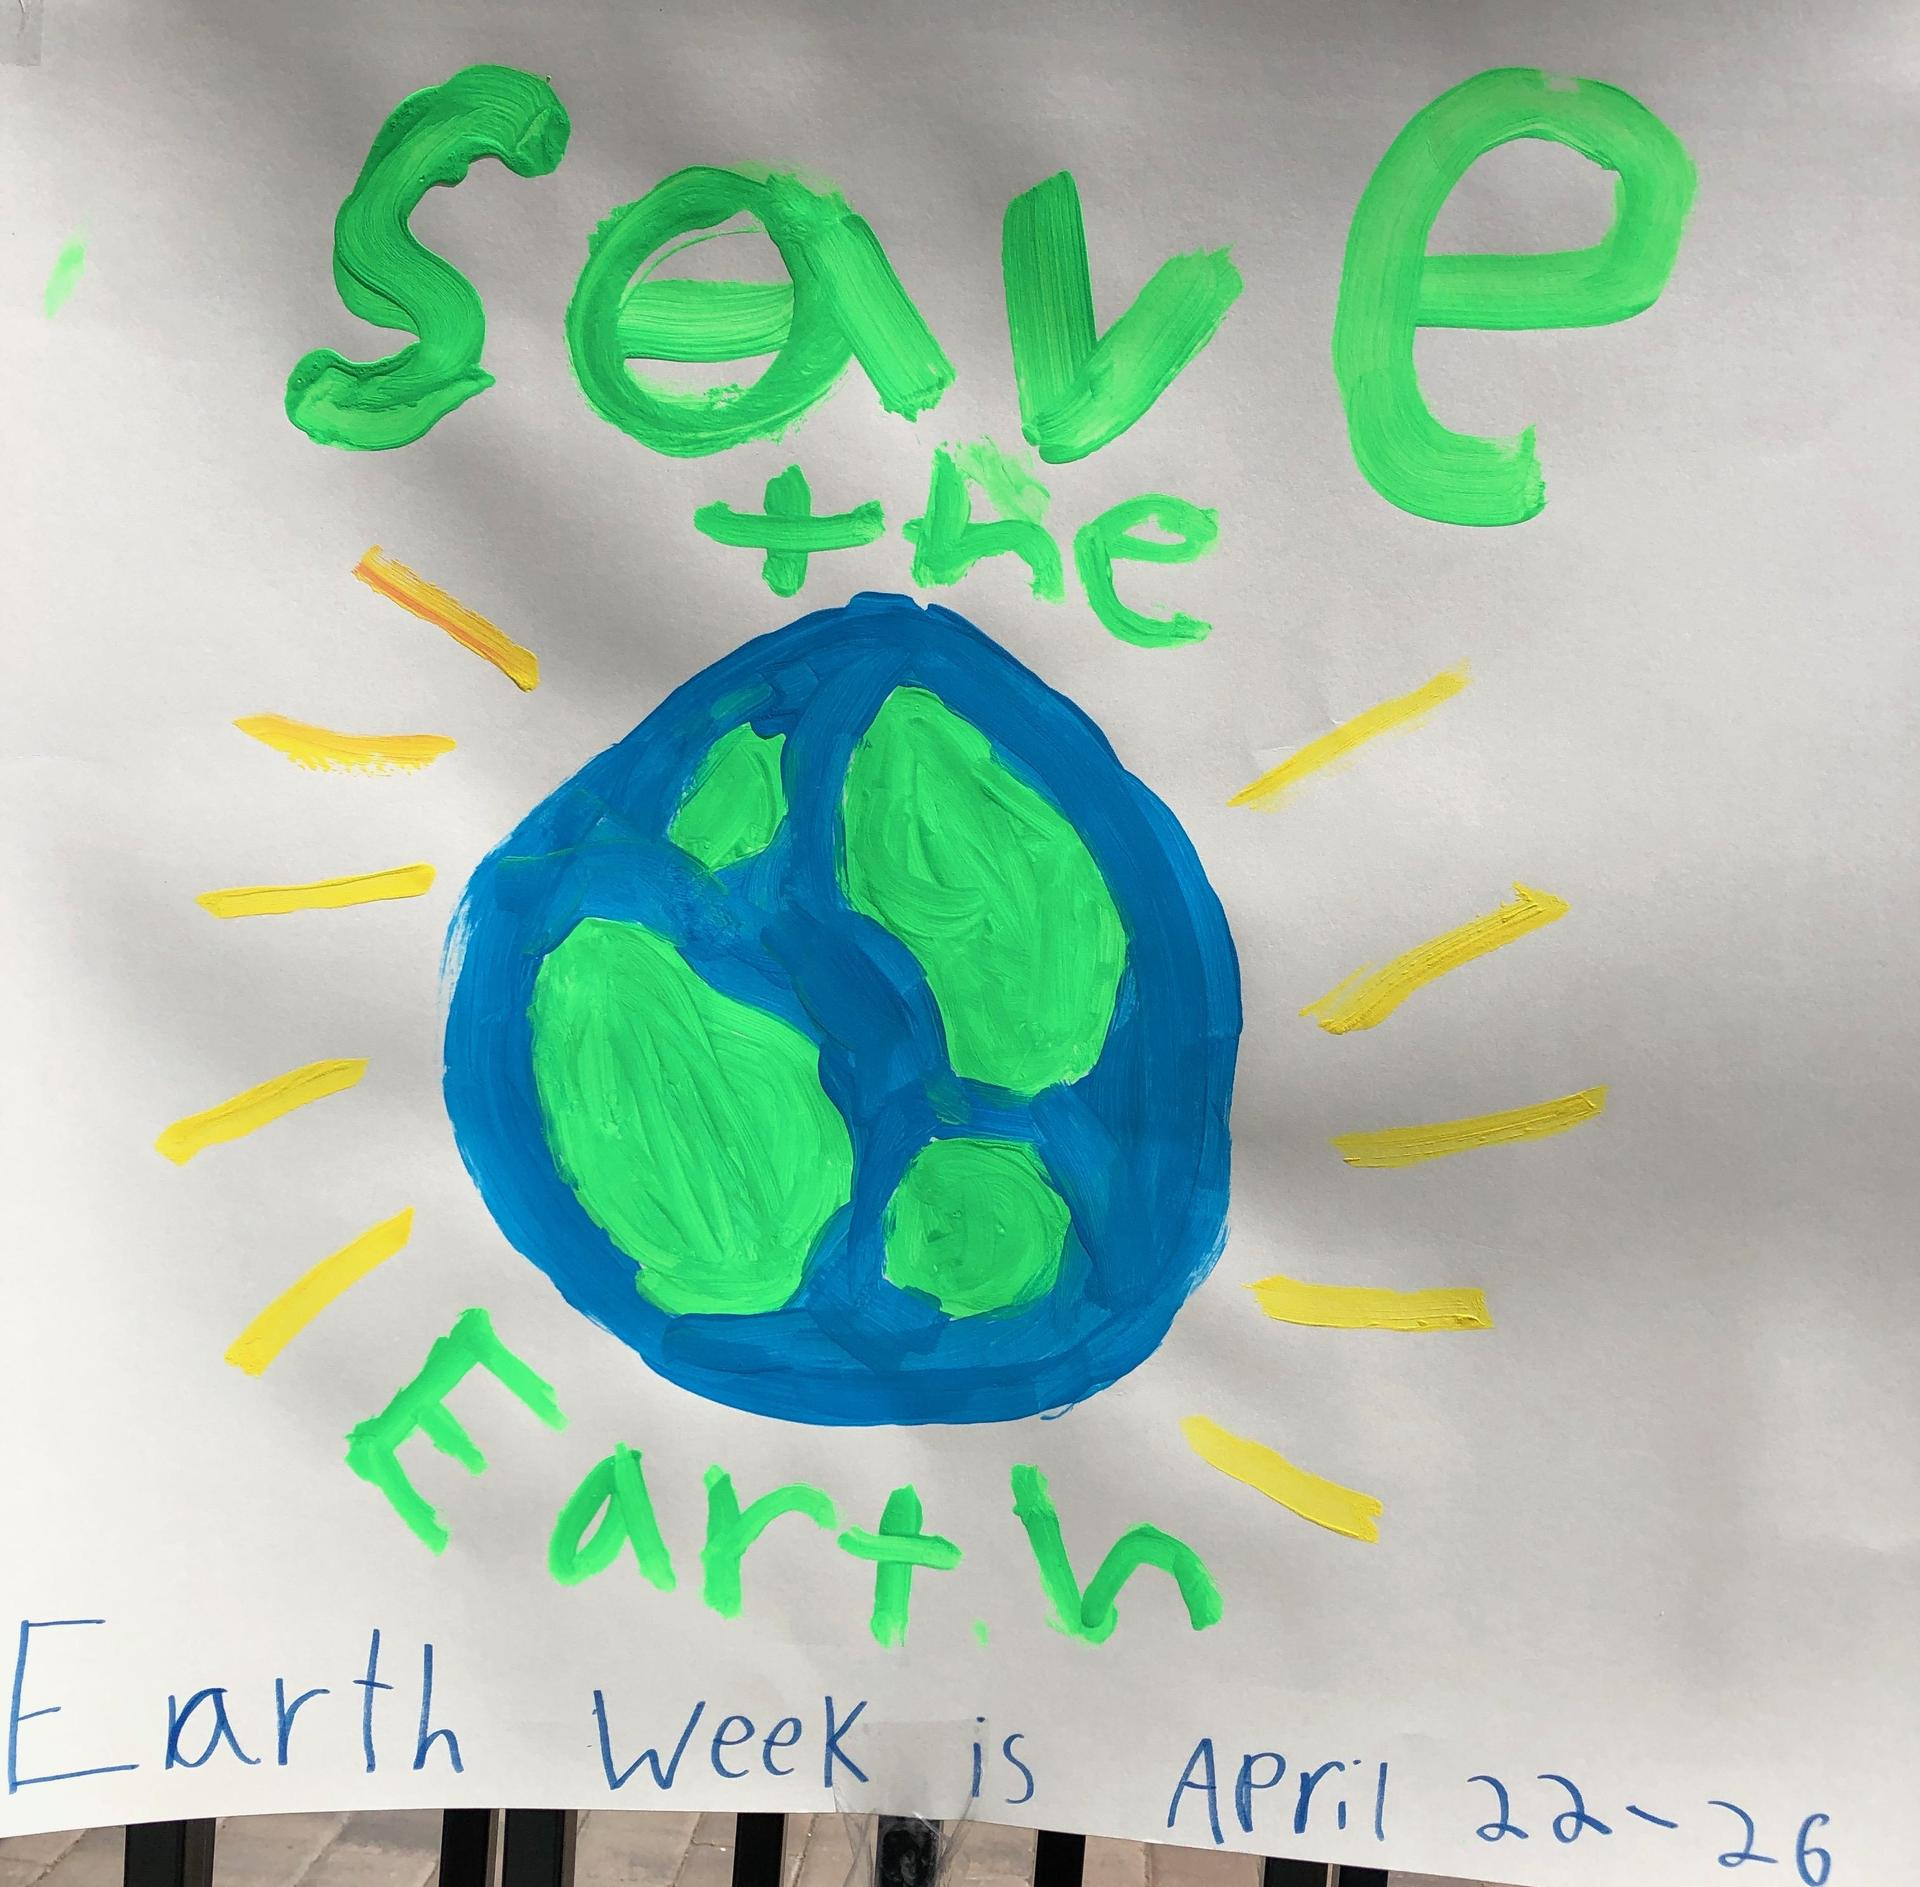 earthweek